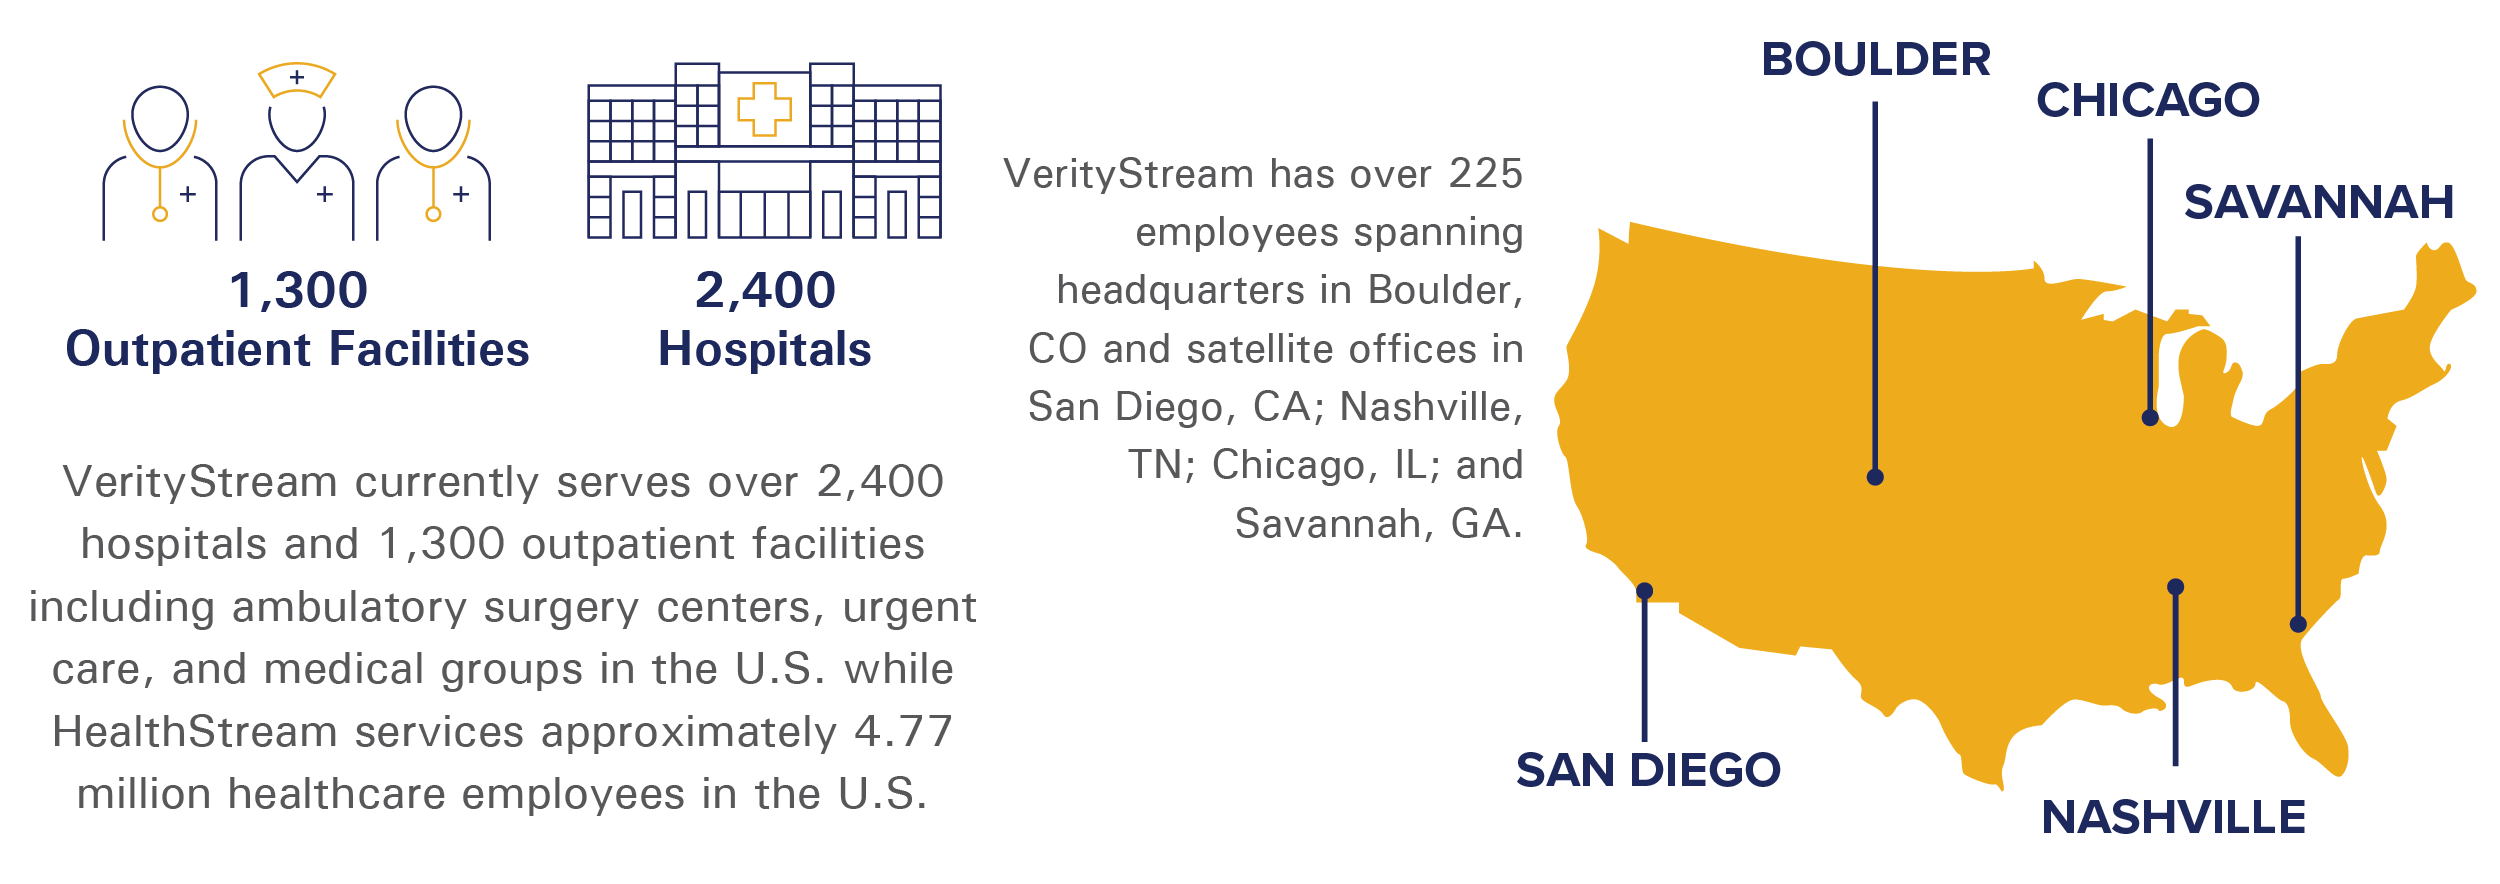 VerityStream Fact Sheet - Company Information